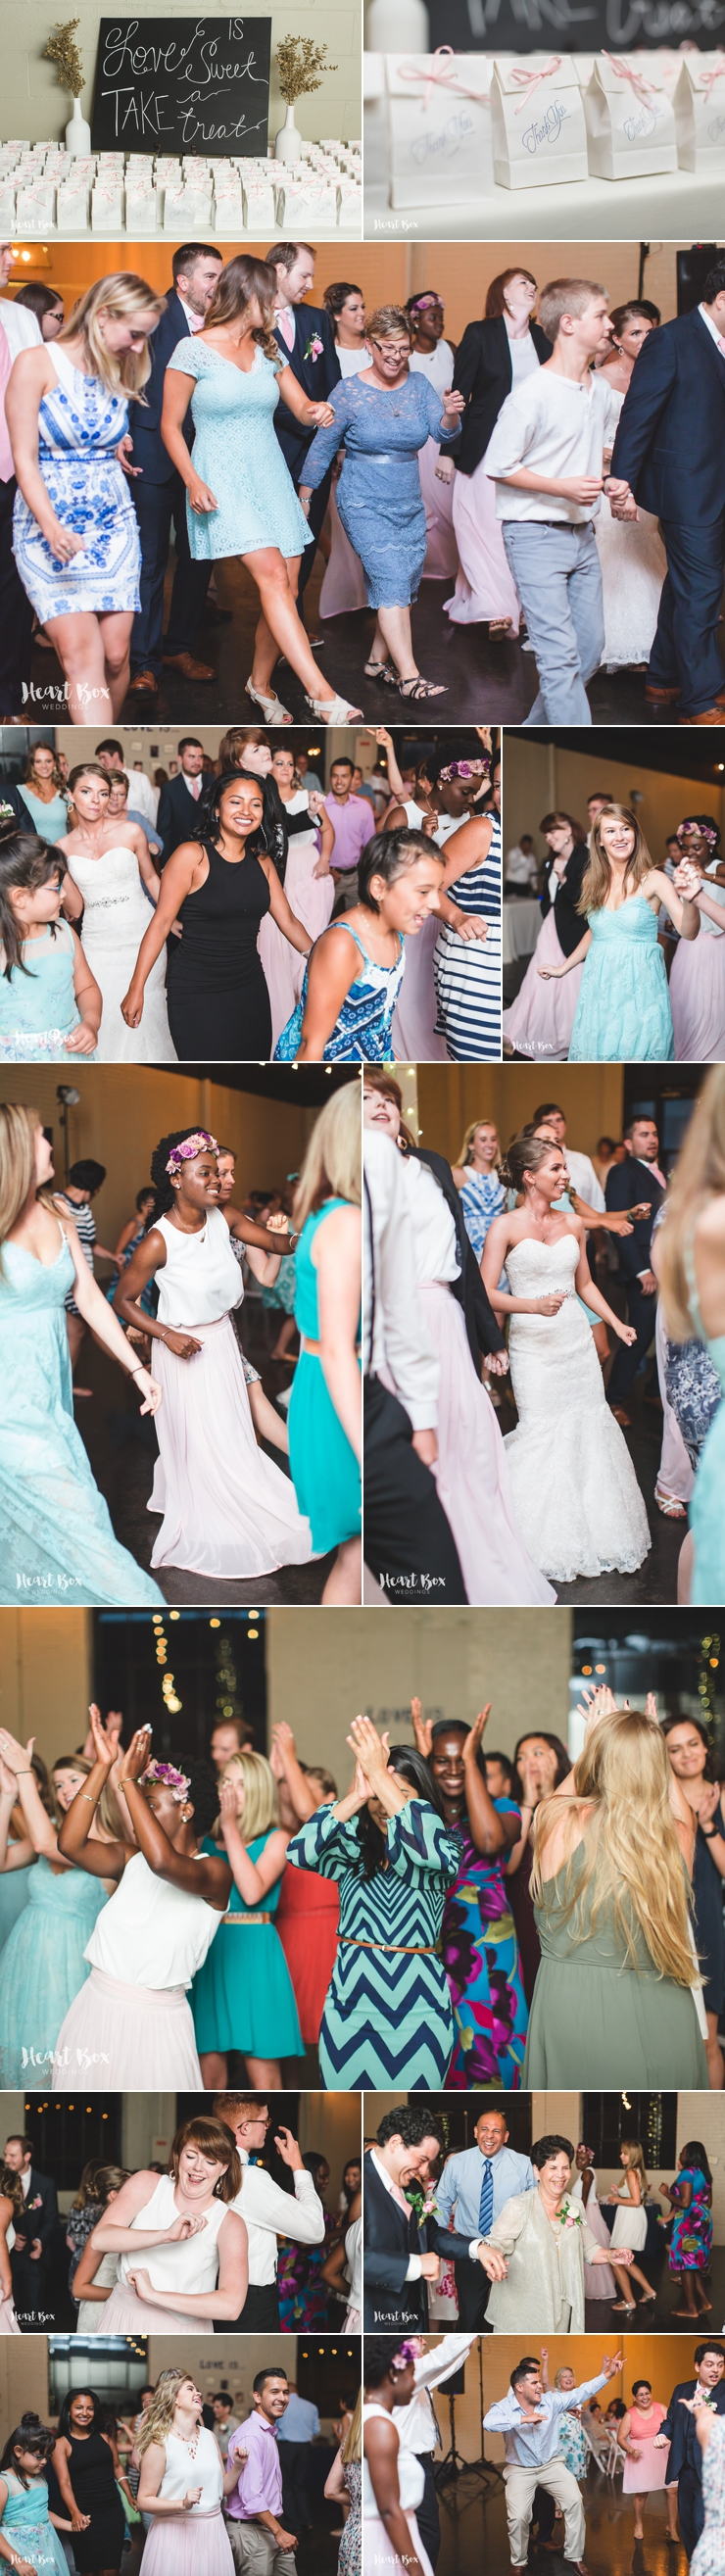 Towns Wedding Blog Collages 14.jpg